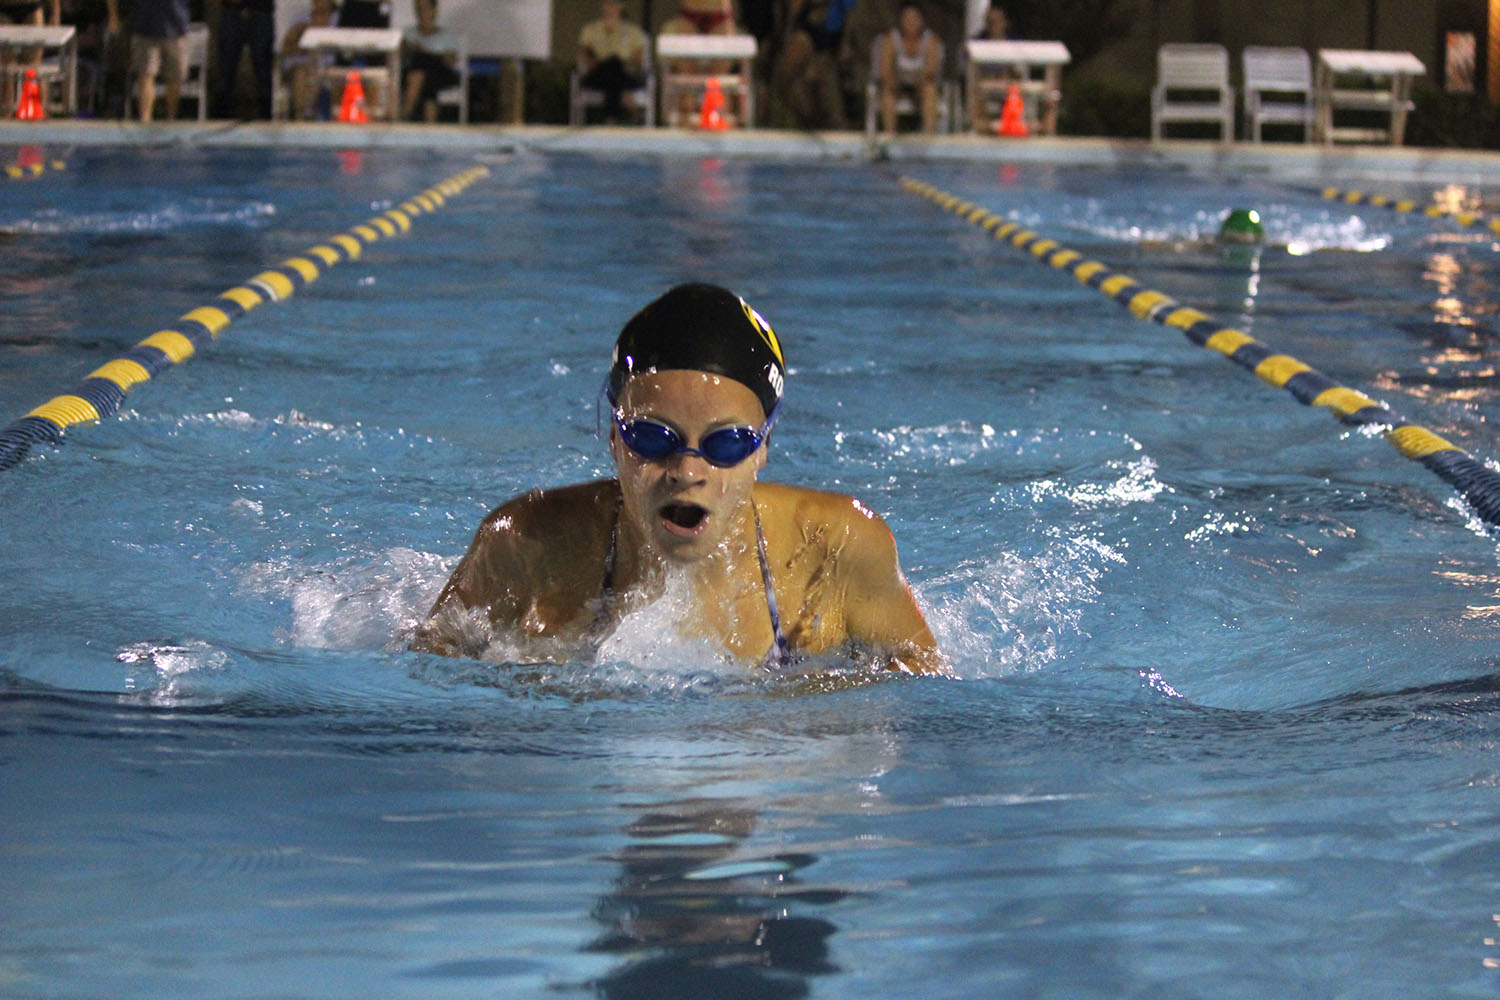 Mid-stroke%2C+junior+Maggie+Rowan+swims+breaststroke+September+5+at+Bobby+Hick%E2%80%99s+pool.+Breaststroke+is+Rowan%E2%80%99s+favorite+event+because+she+feels+she+does+best+in+that+event.+